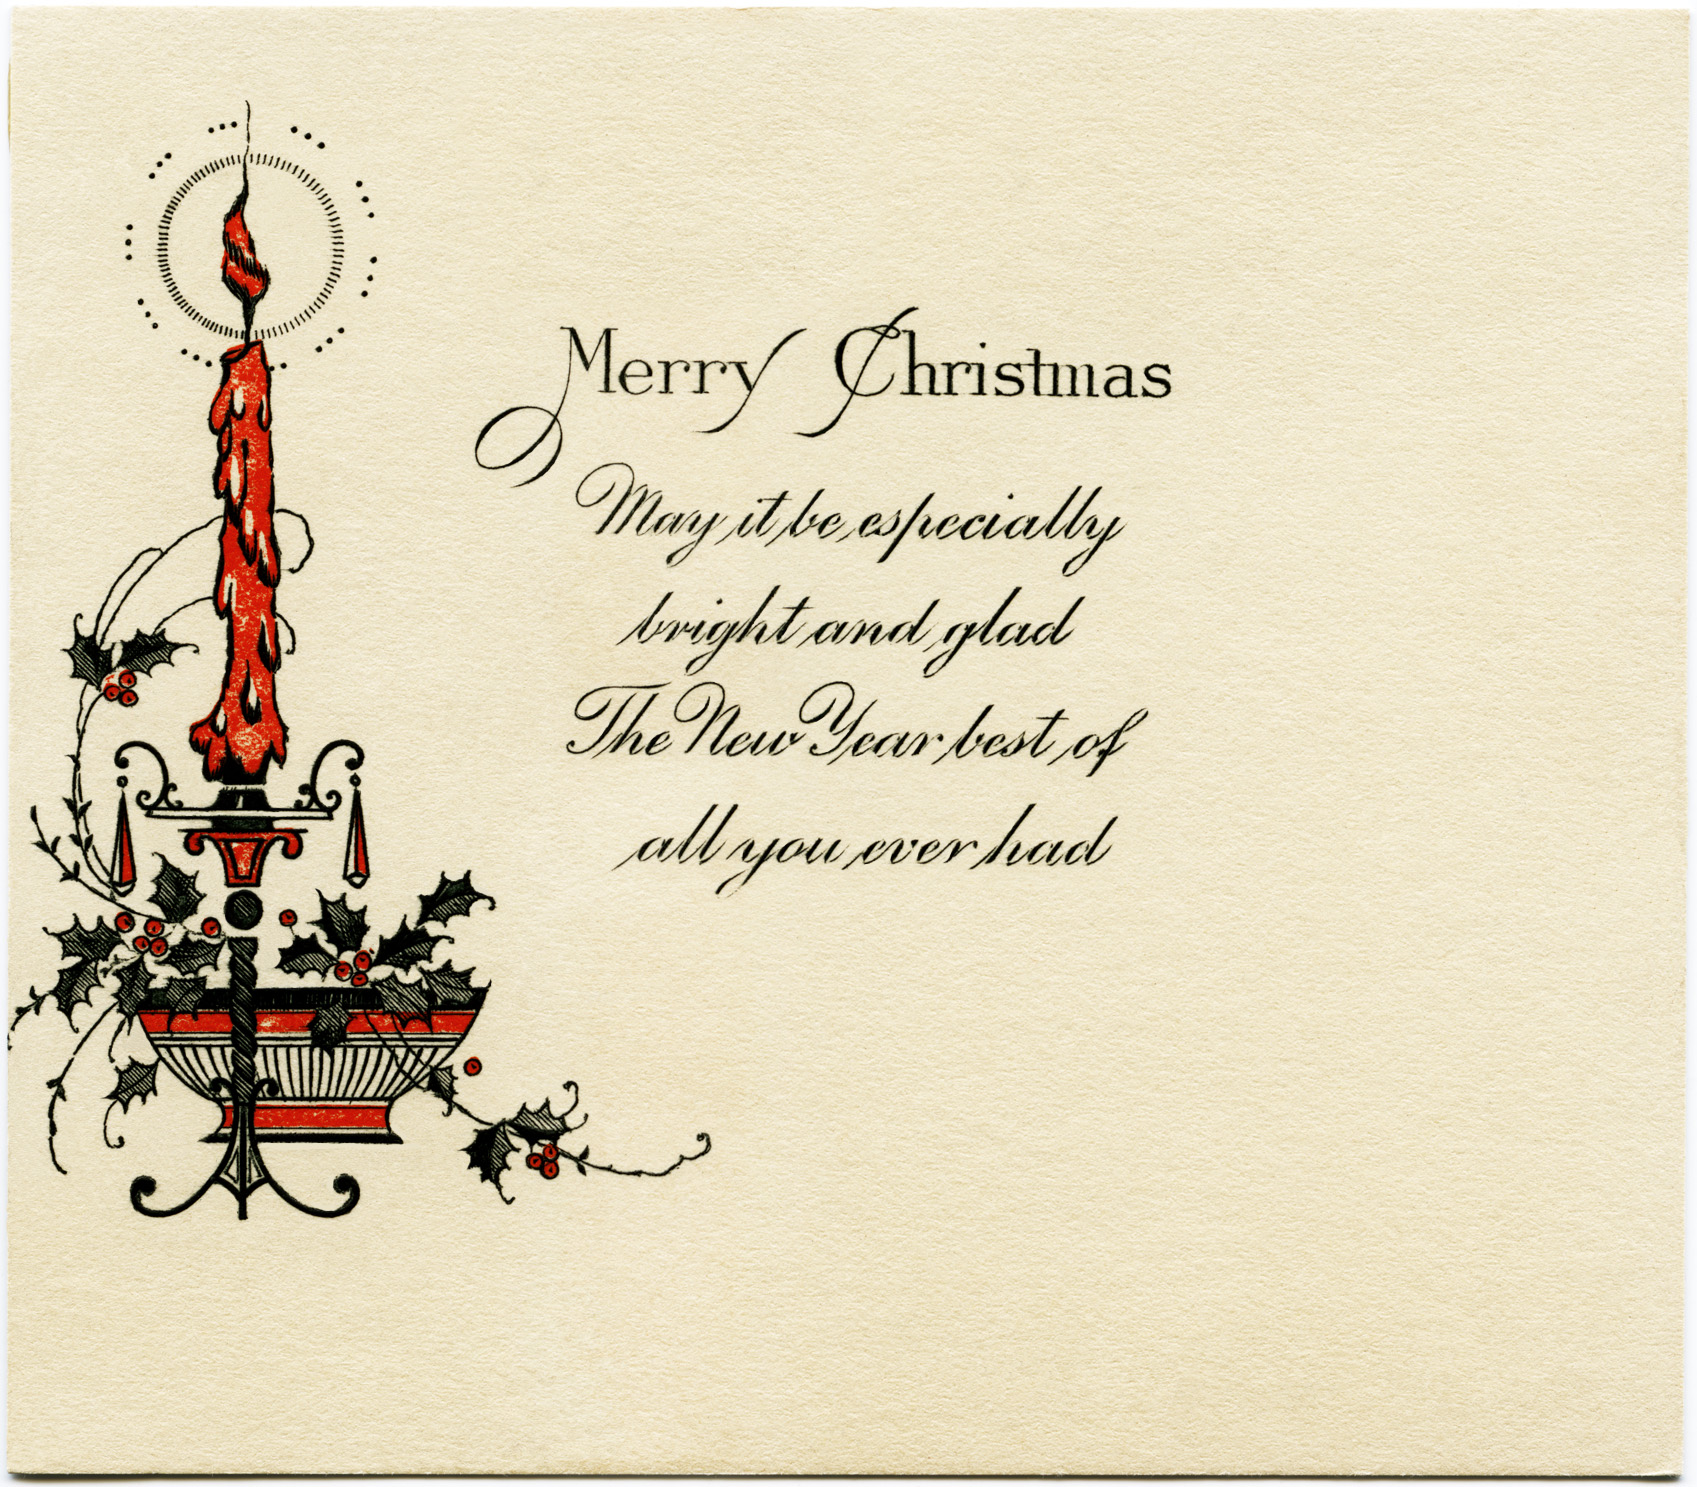 Free Vintage Image Antique Christmas Card Old Design Shop Blog